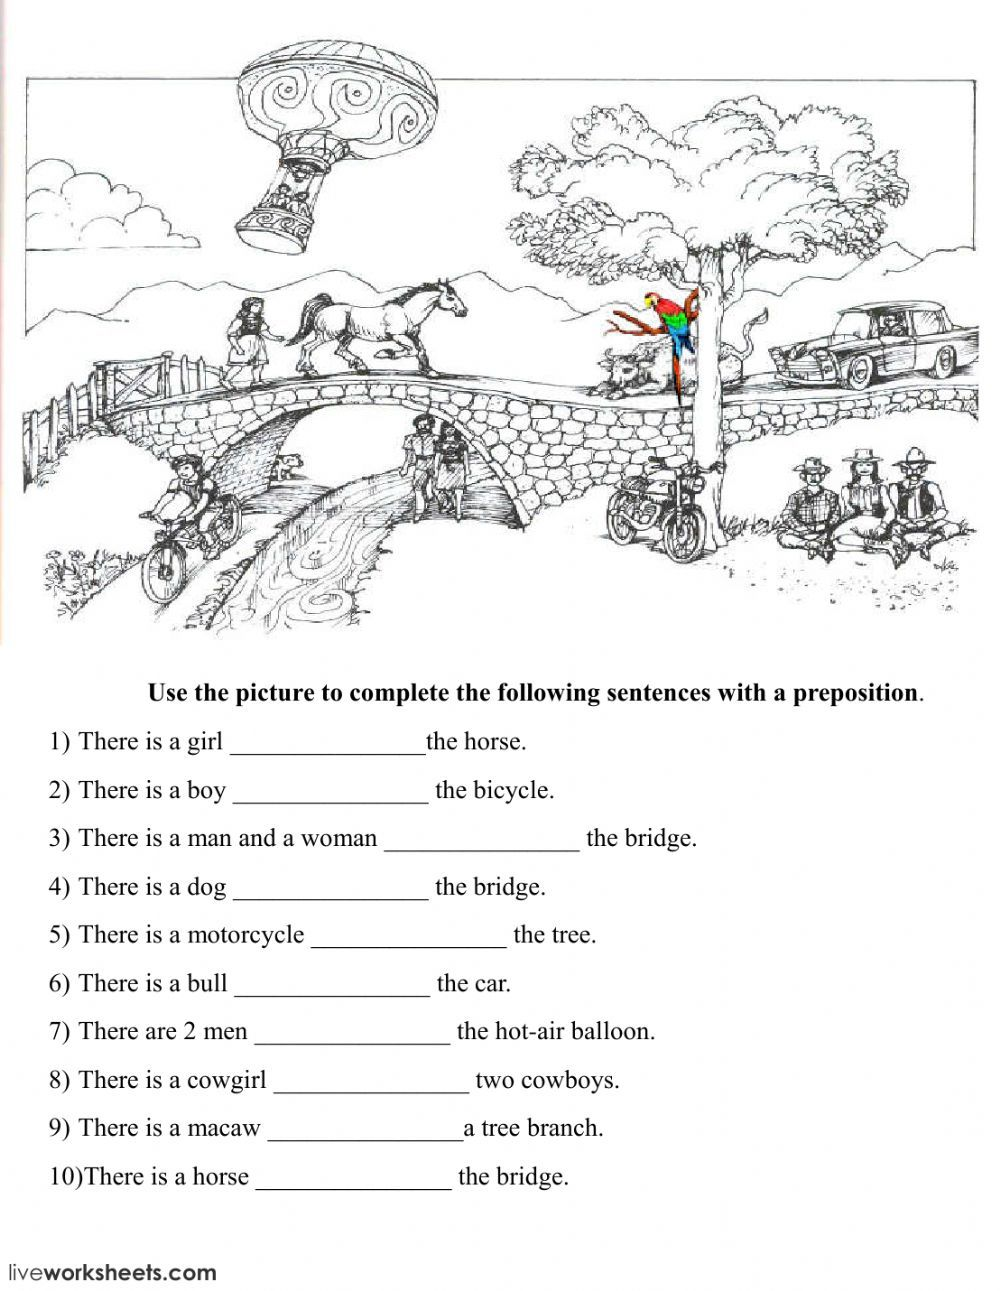 Prepositions Of Place Online Exercise And Pdf You Can Do The